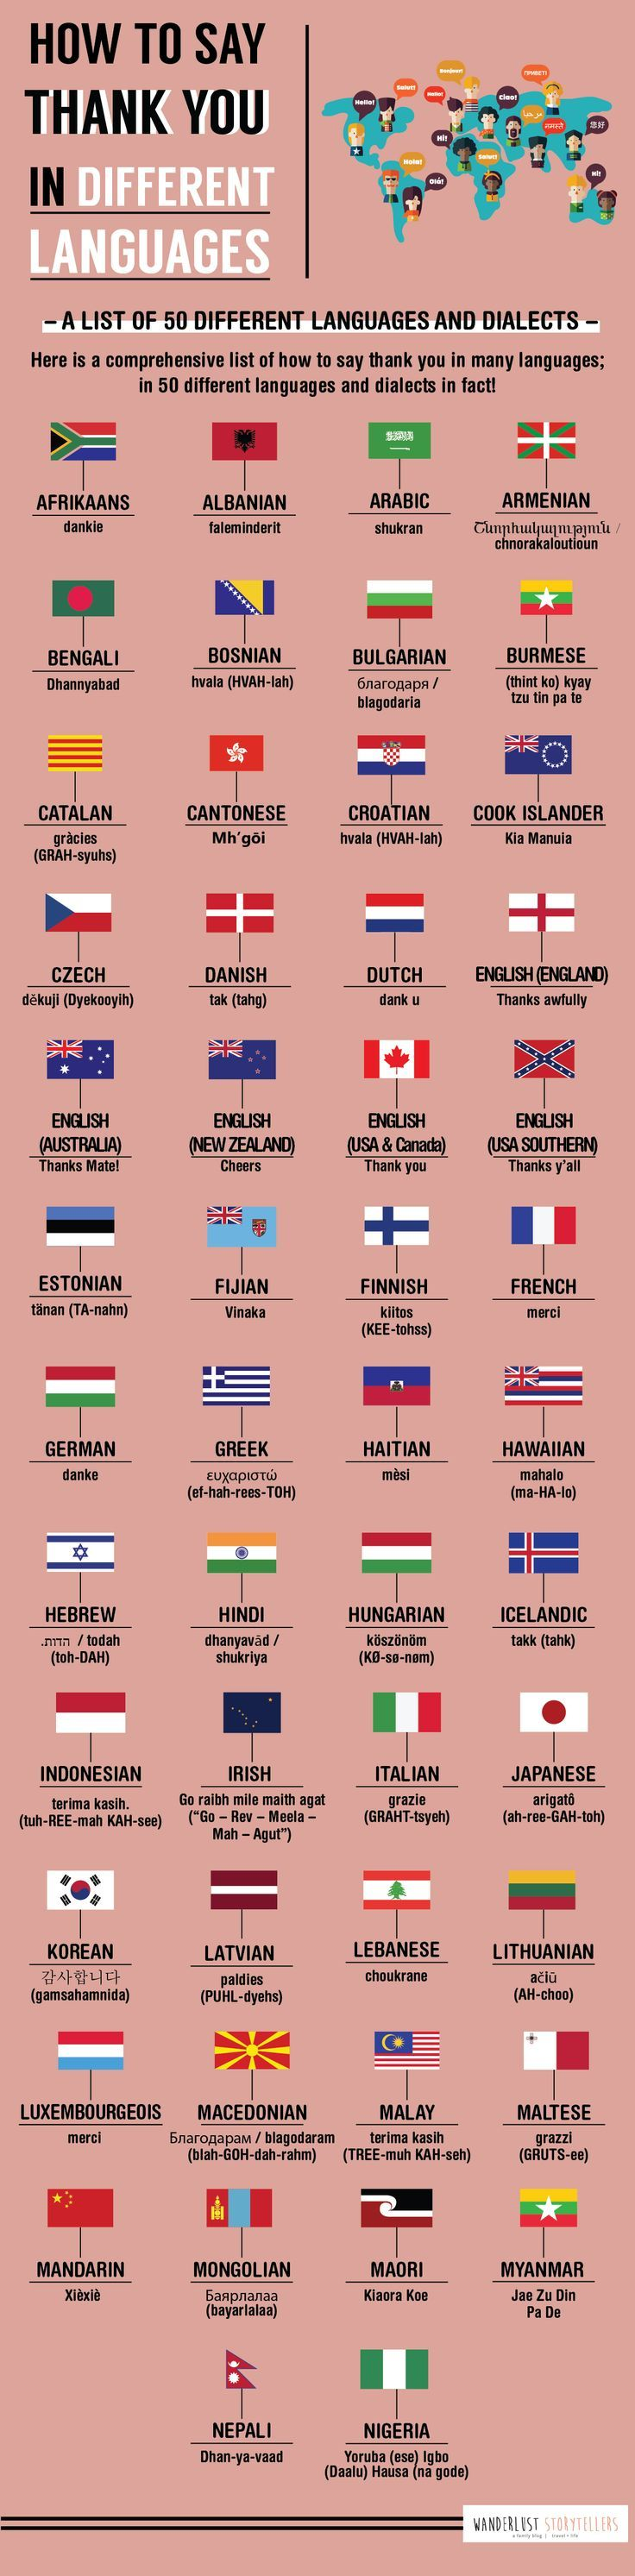 How to Say Thank You in 65 Different Languages | new | Words